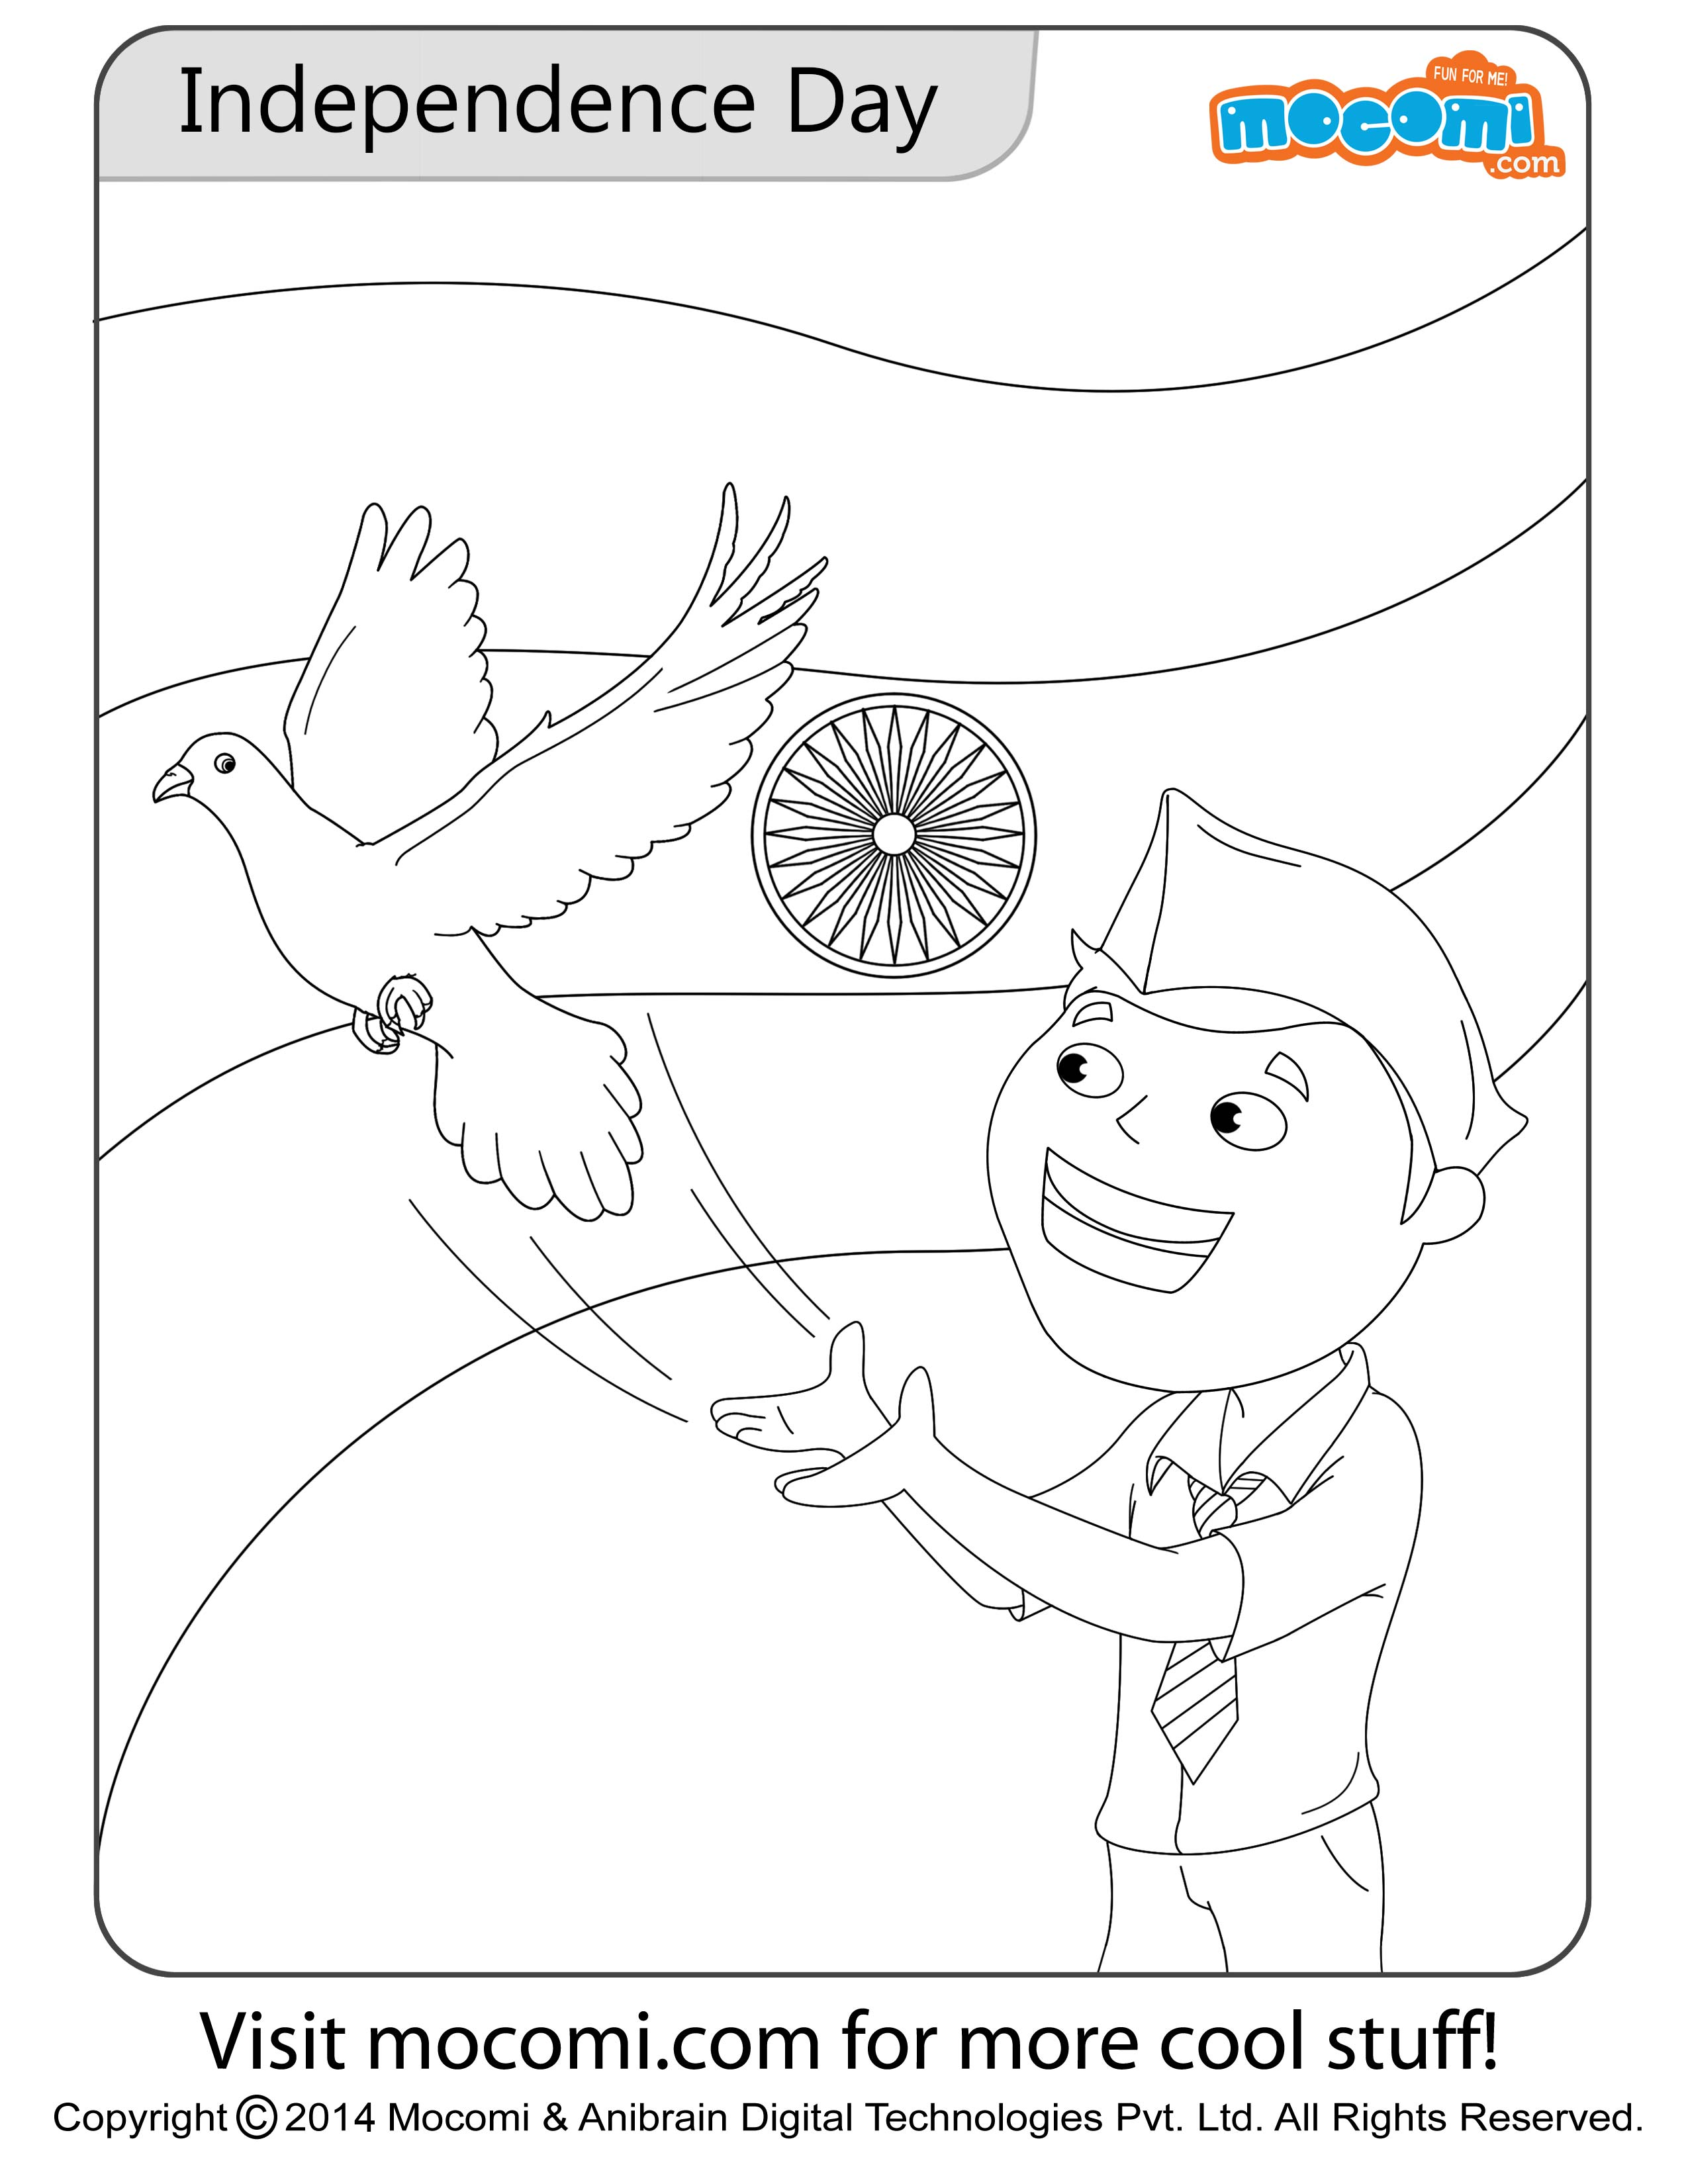 Independence Day Colouring Page